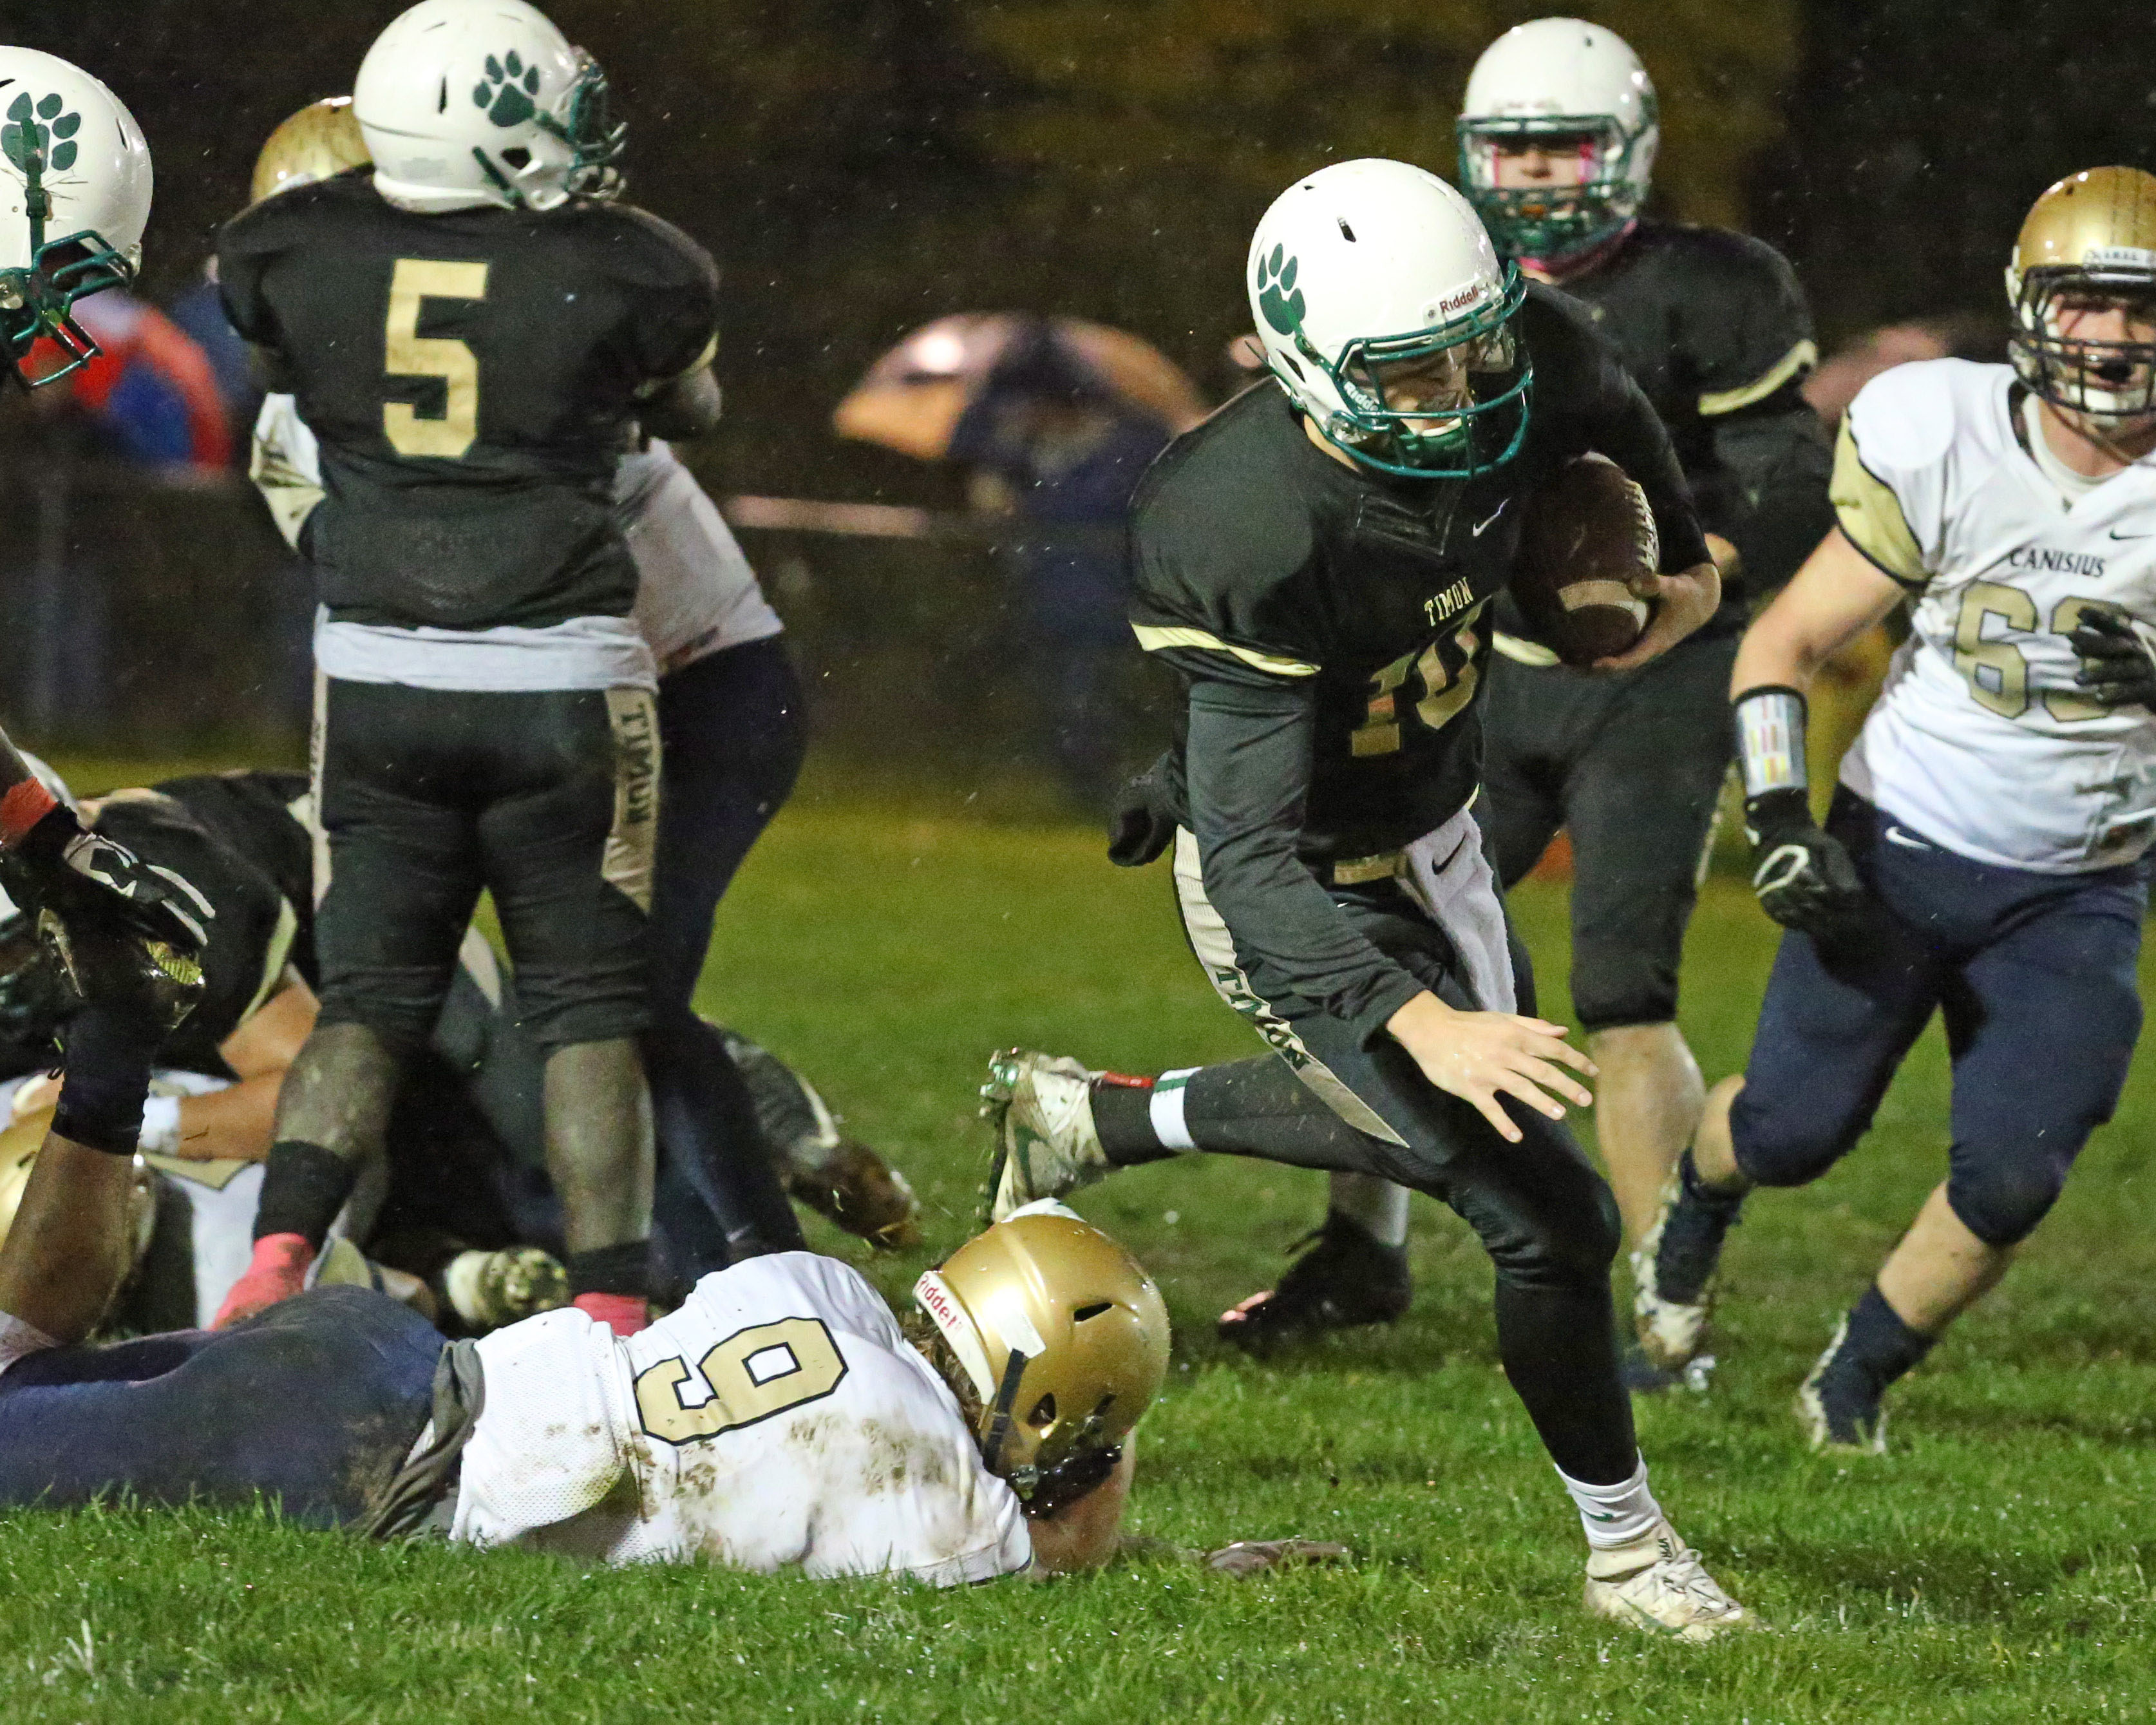 Timon's Matt Myers beats Canisius' Jacob Lutz for a first down in the first quarter Friday night. (James P. McCoy/Buffalo News)